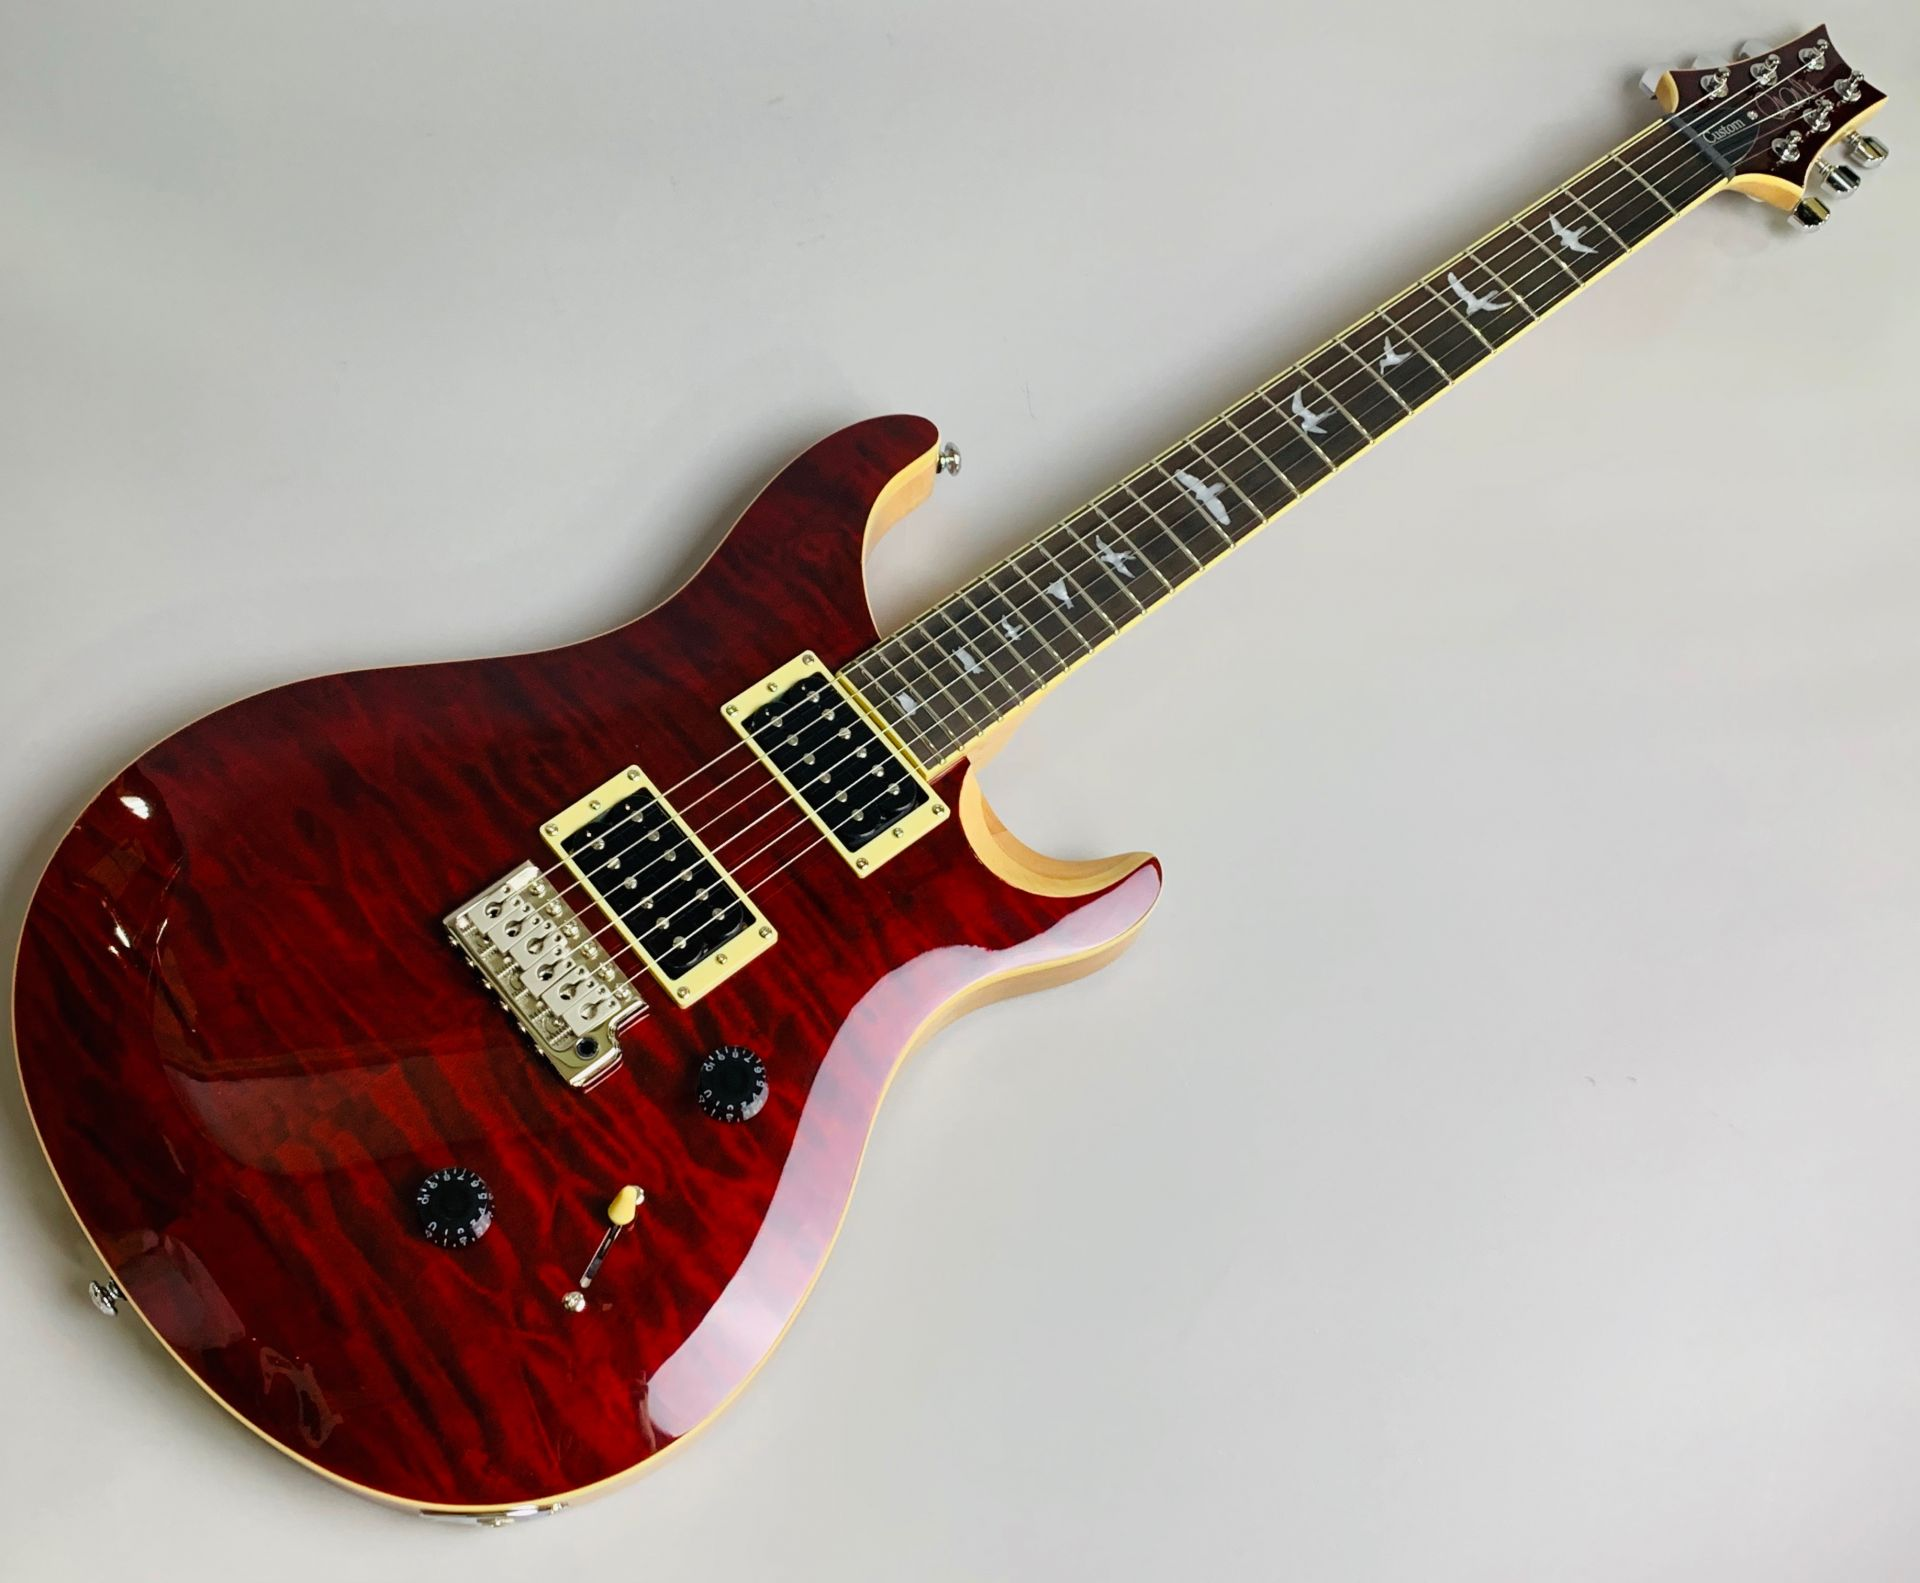 SE CUSTOM 24 QM LTD Black Cherry